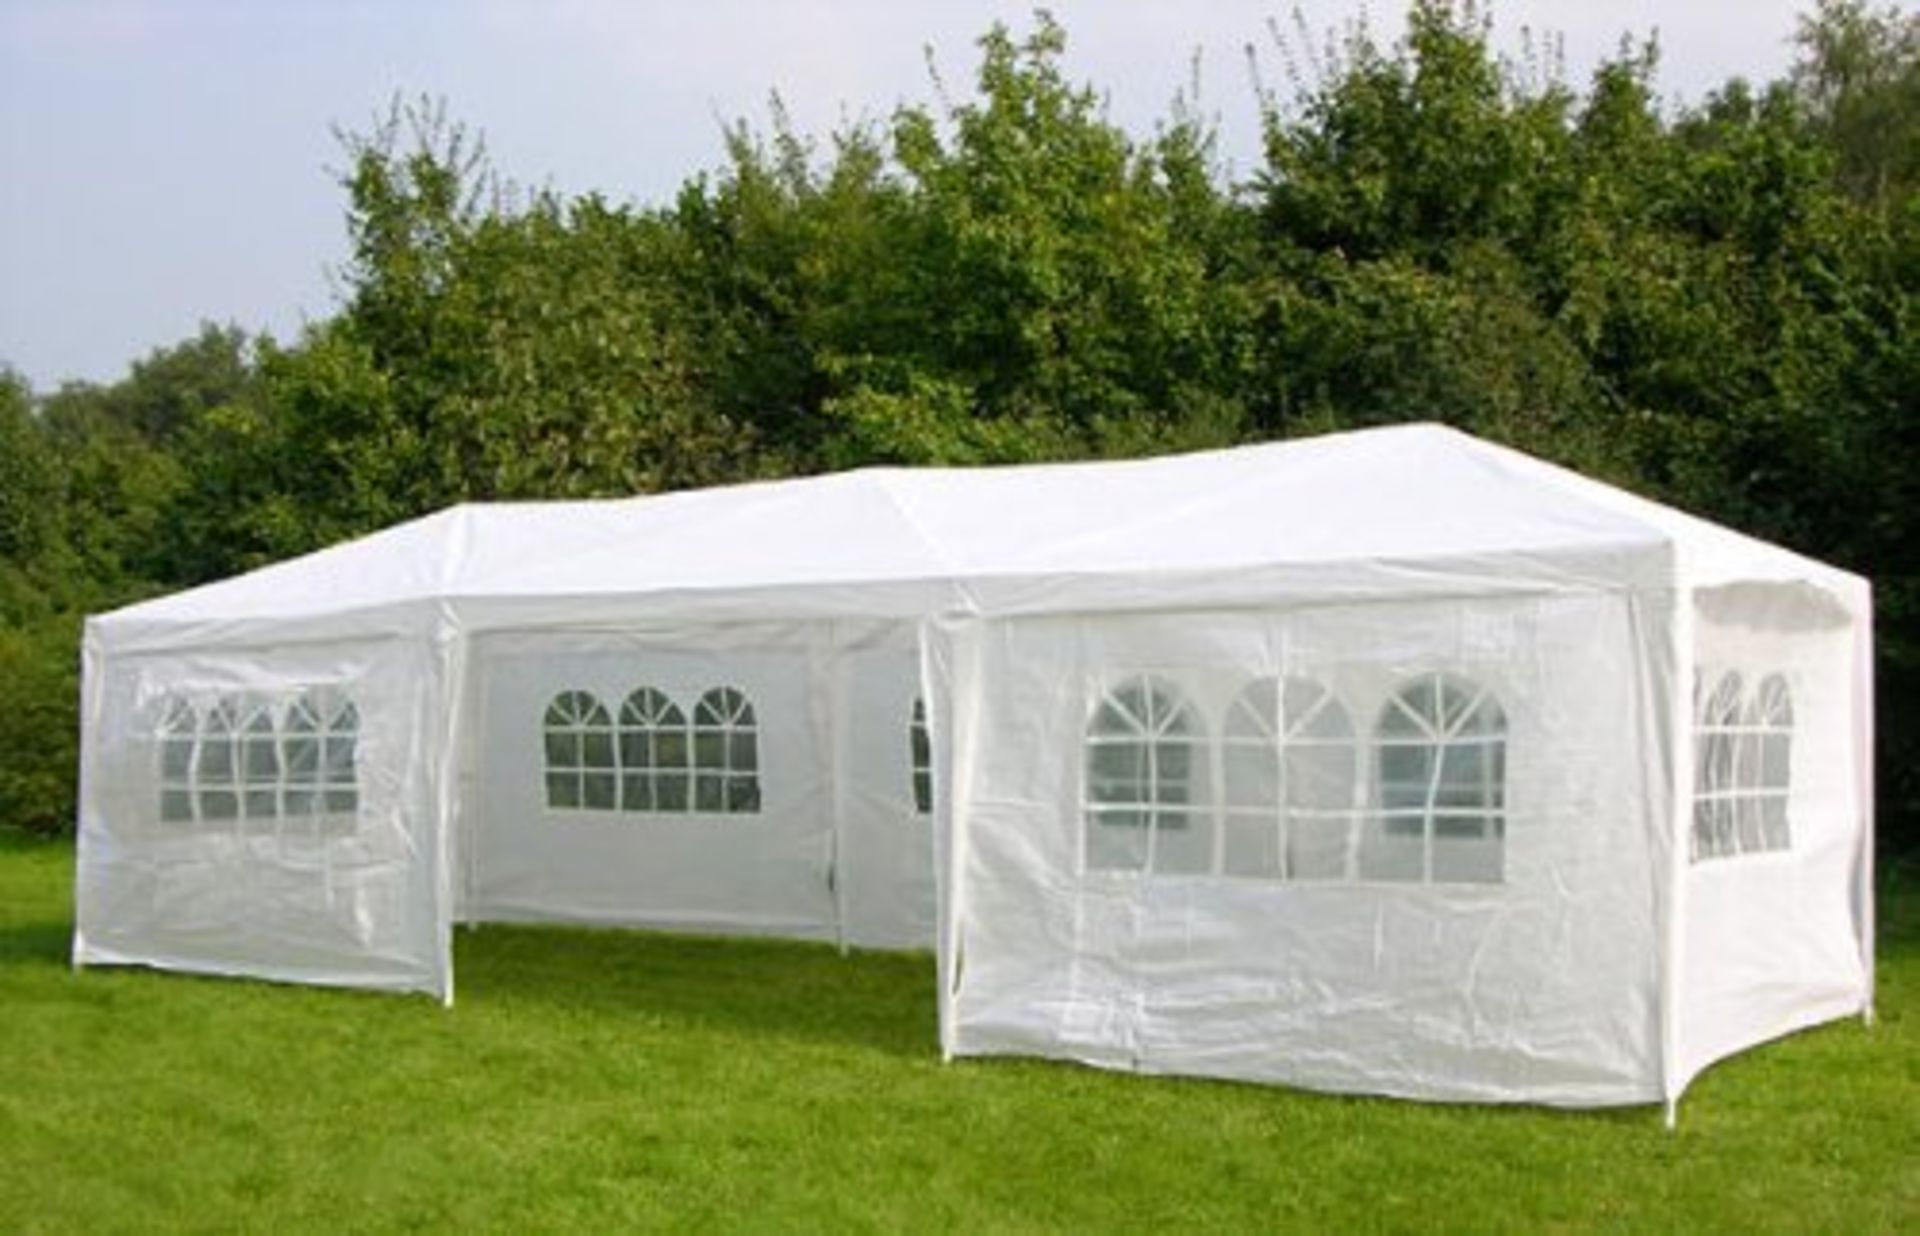 Lot 32166 - V Brand New 3M x 9M Gazebo